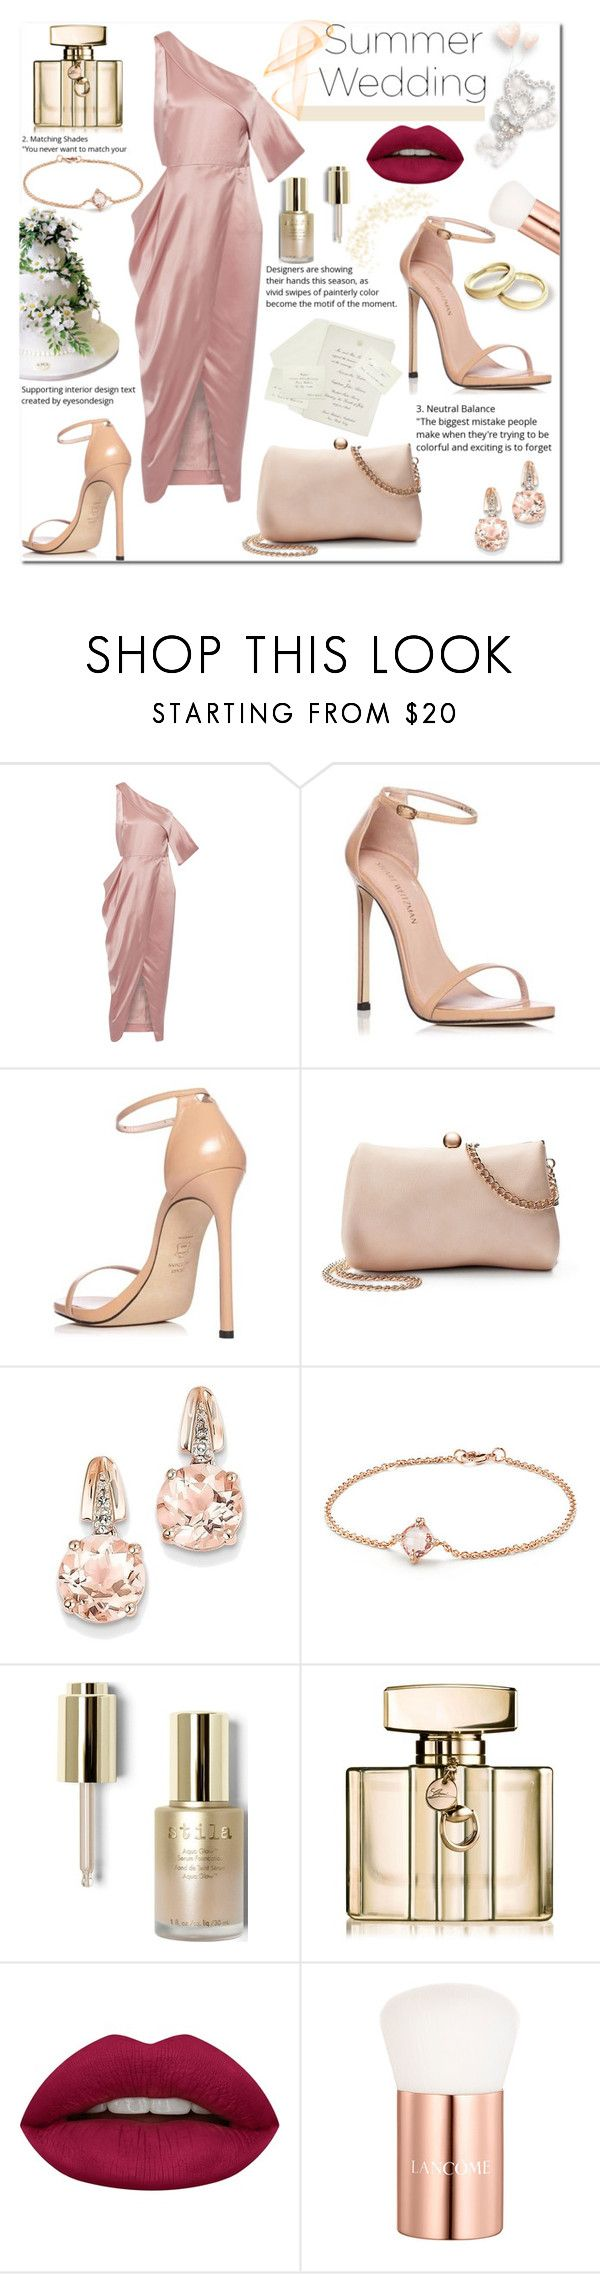 """Summer wedding"" by pengy-vanou ❤ liked on Polyvore featuring Michelle Mason, Stuart Weitzman, LC Lauren Conrad, Ultimate, BillyTheTree, David Yurman, Stila, Gucci, Huda Beauty and Lancôme"